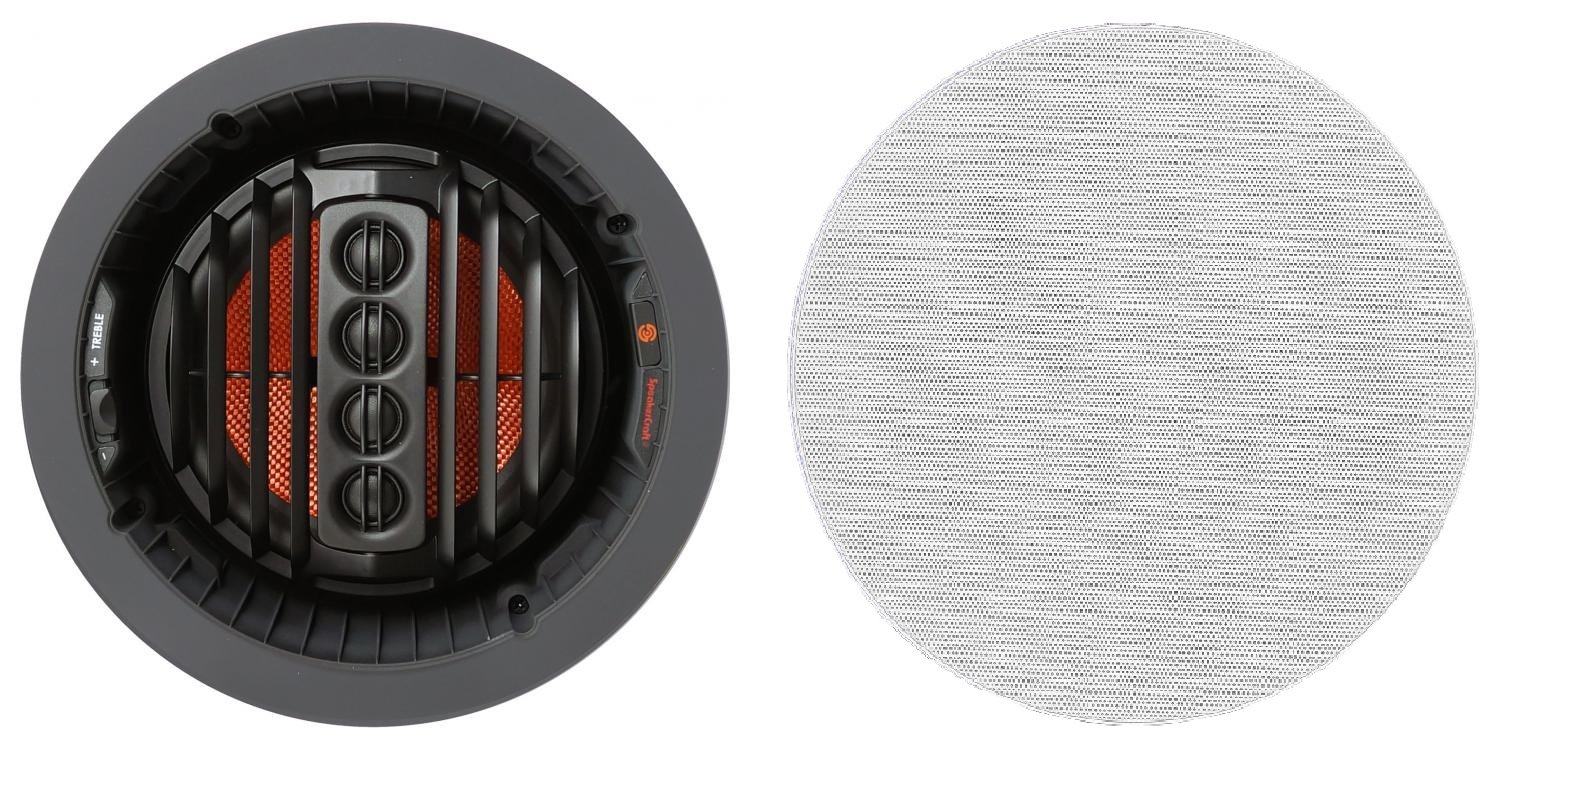 Speakercraft Aim 272 In Ceiling Speaker The Listening